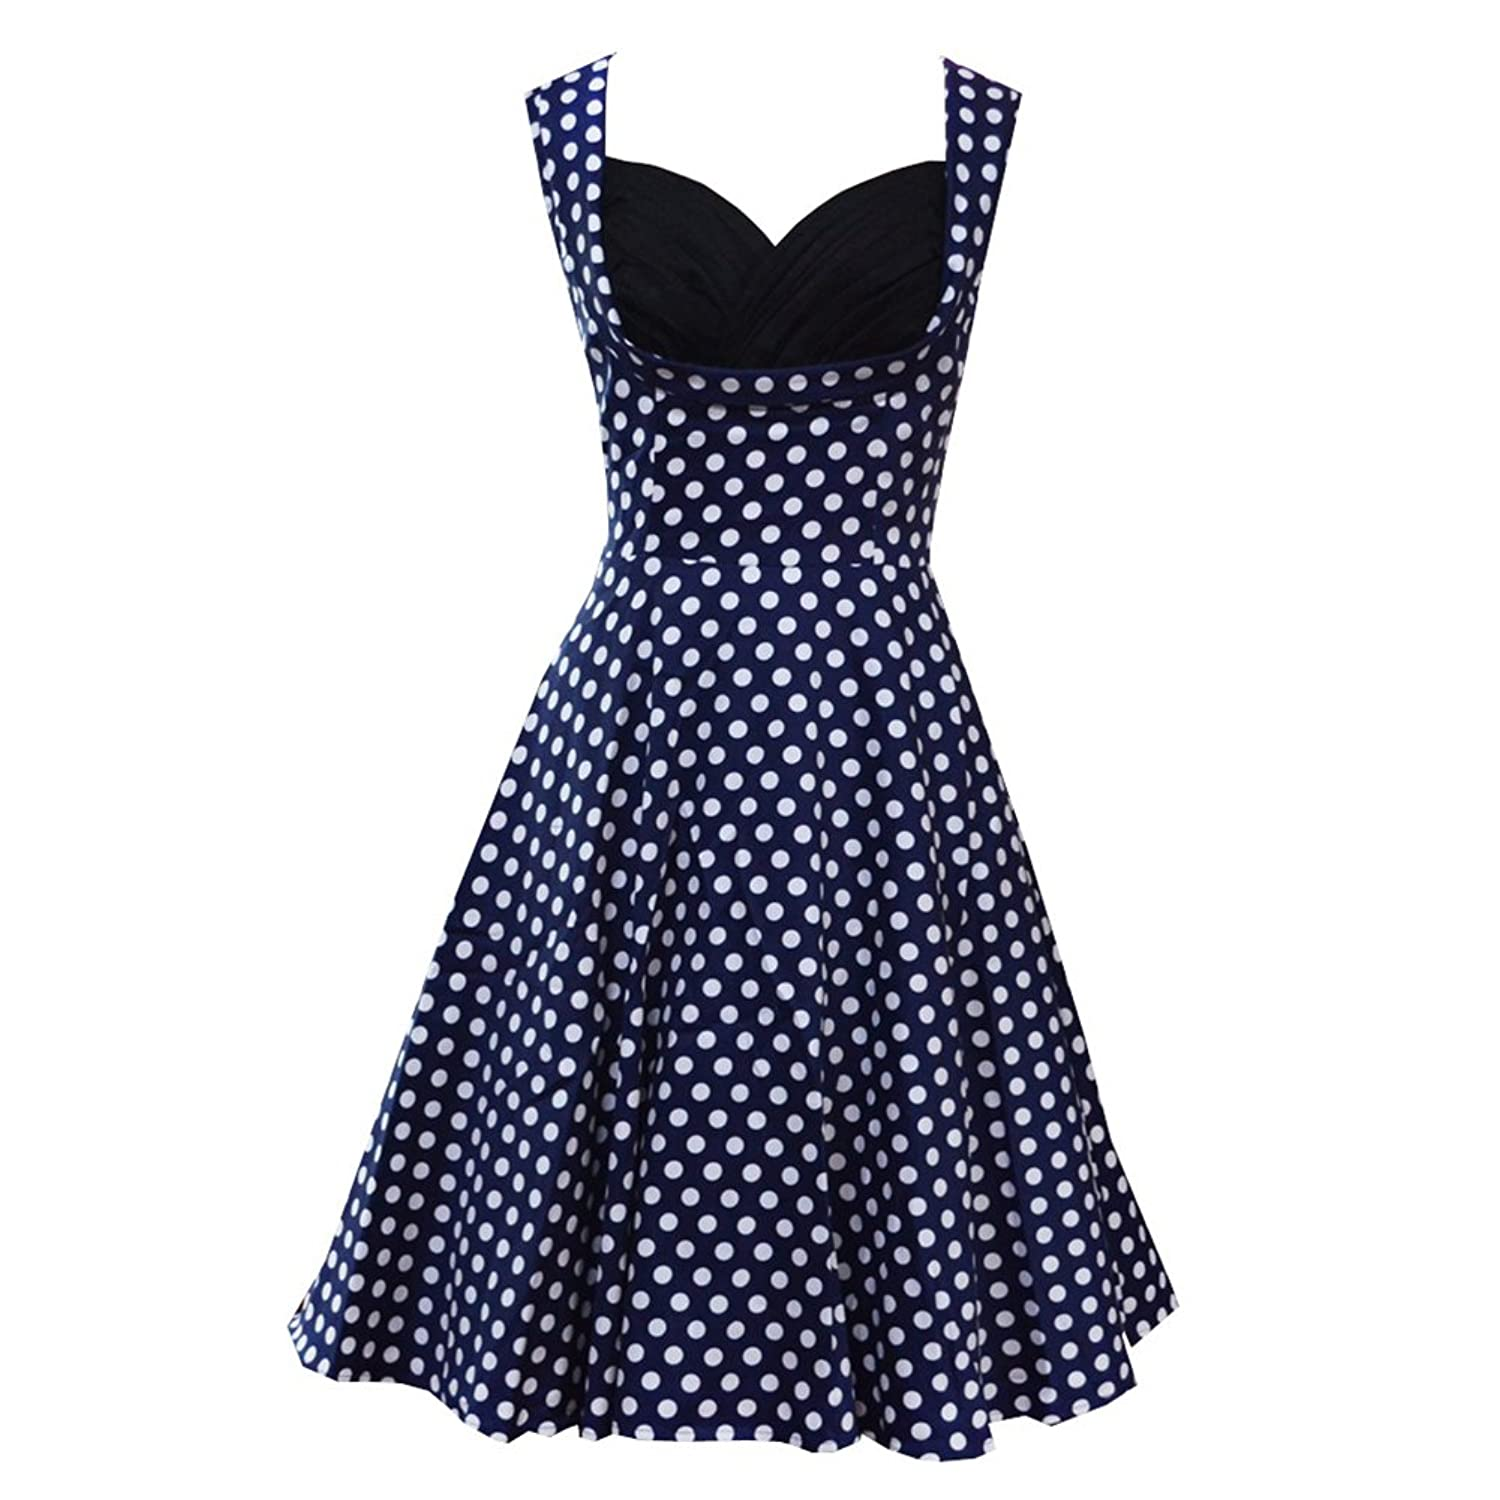 Ensnovo Womens Cut Out Vintage 1950s Style Floral Printed Polka Dot Swing Dress